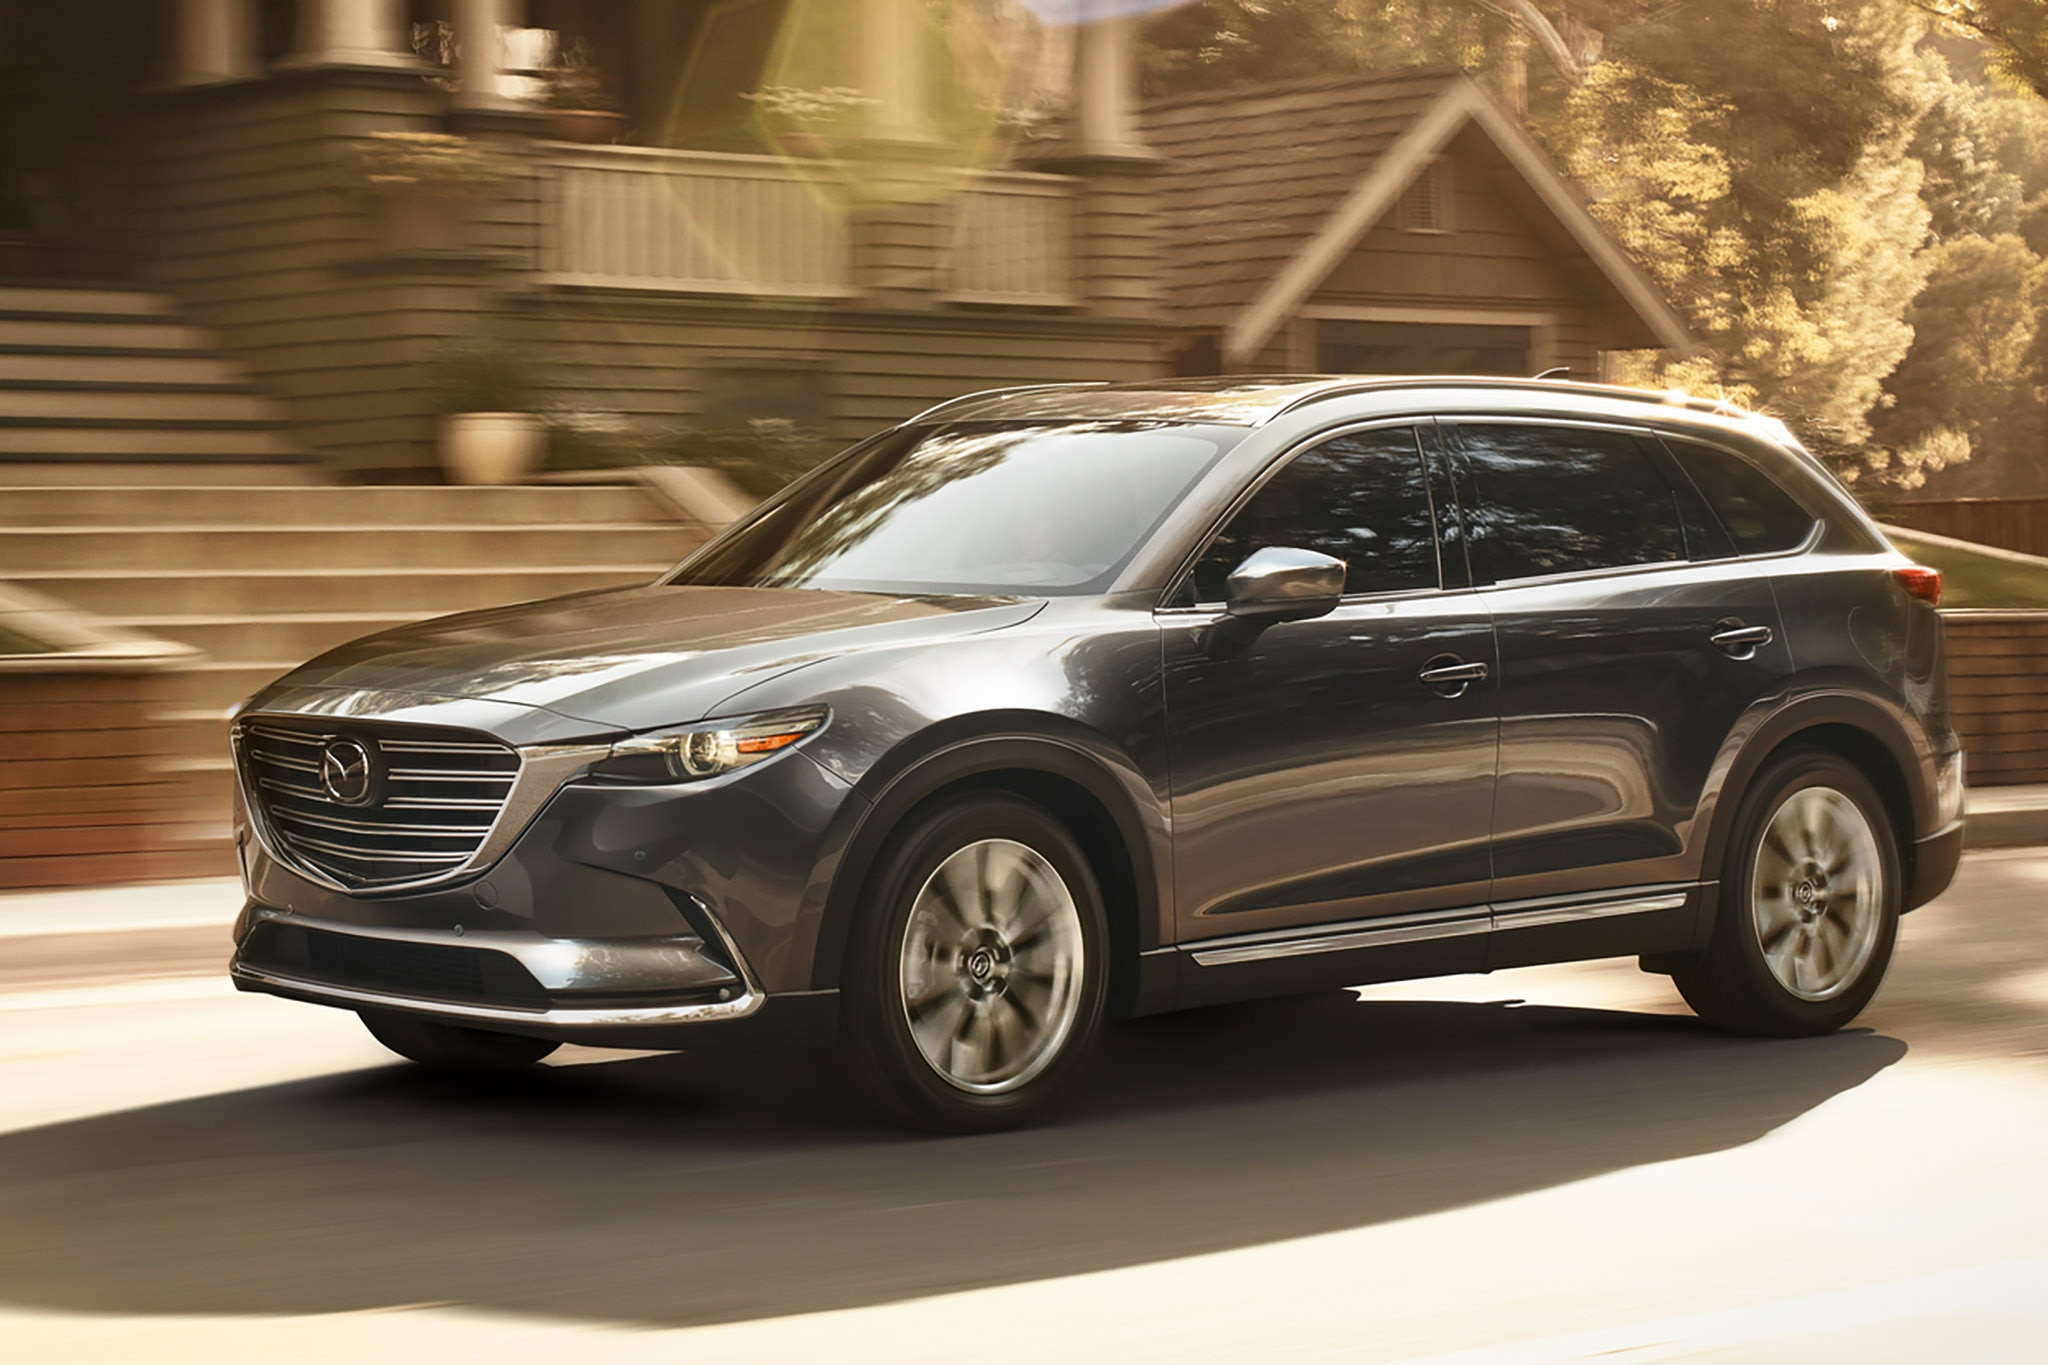 2019 Mazda Cx 9 Will Be Android Auto And Apple Carplay